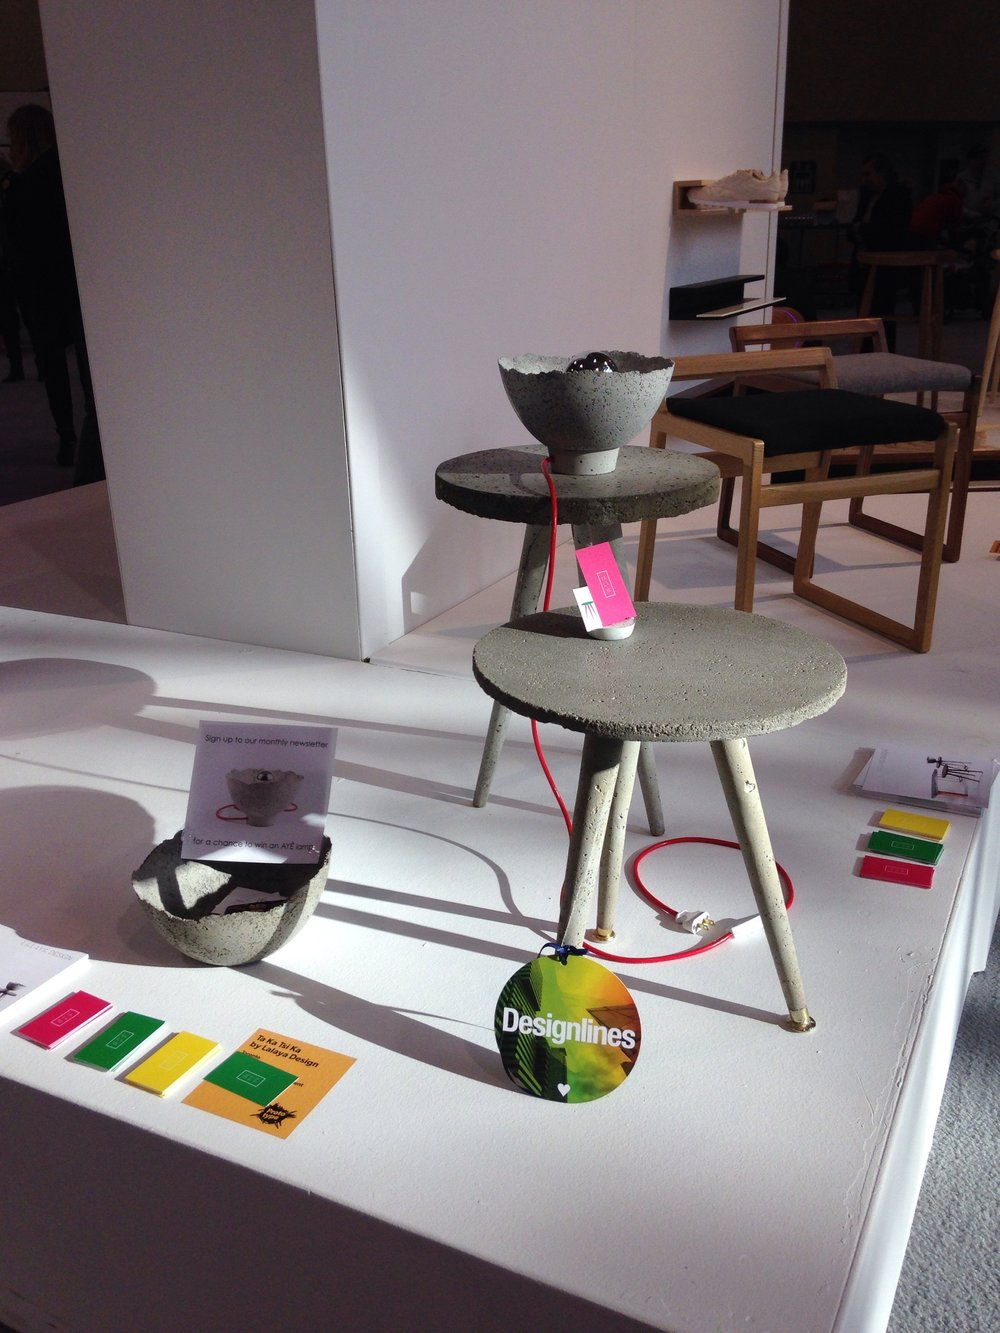 LALAYA Design installation at IDS2018